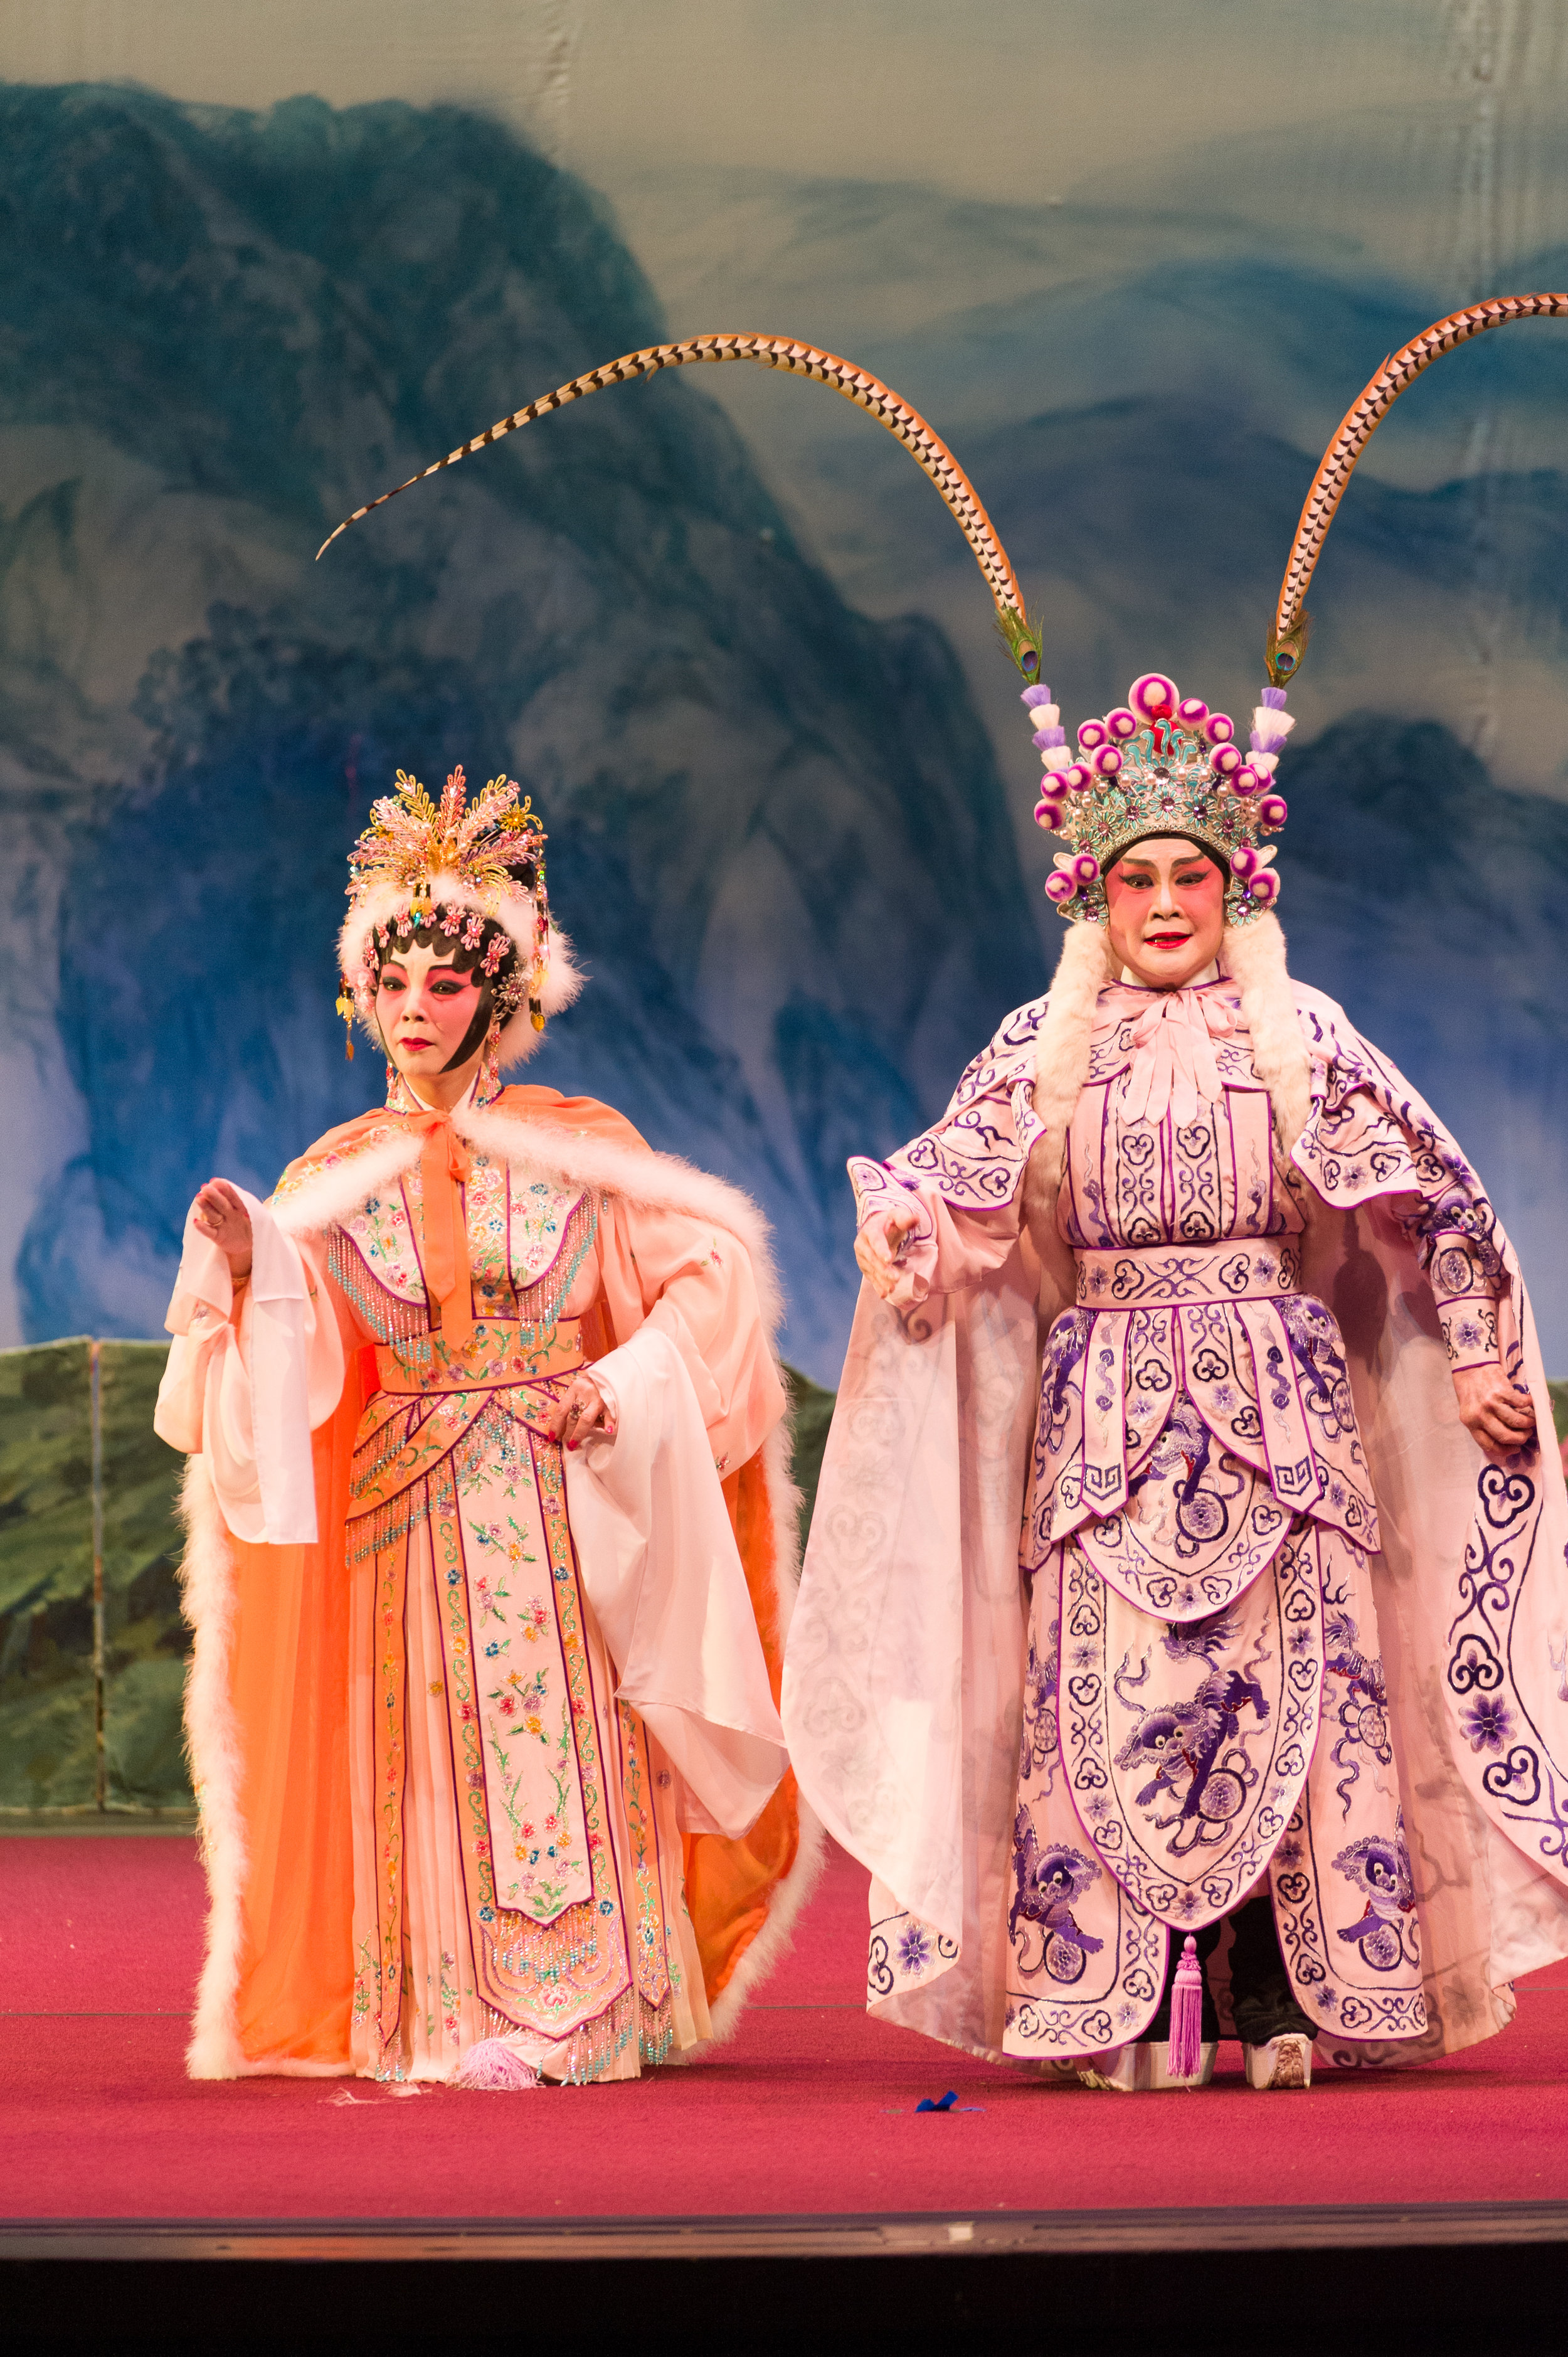 Red.Bean.Cantonese.Opera.Performance.Show.2014.July.27.2014.0405.jpg